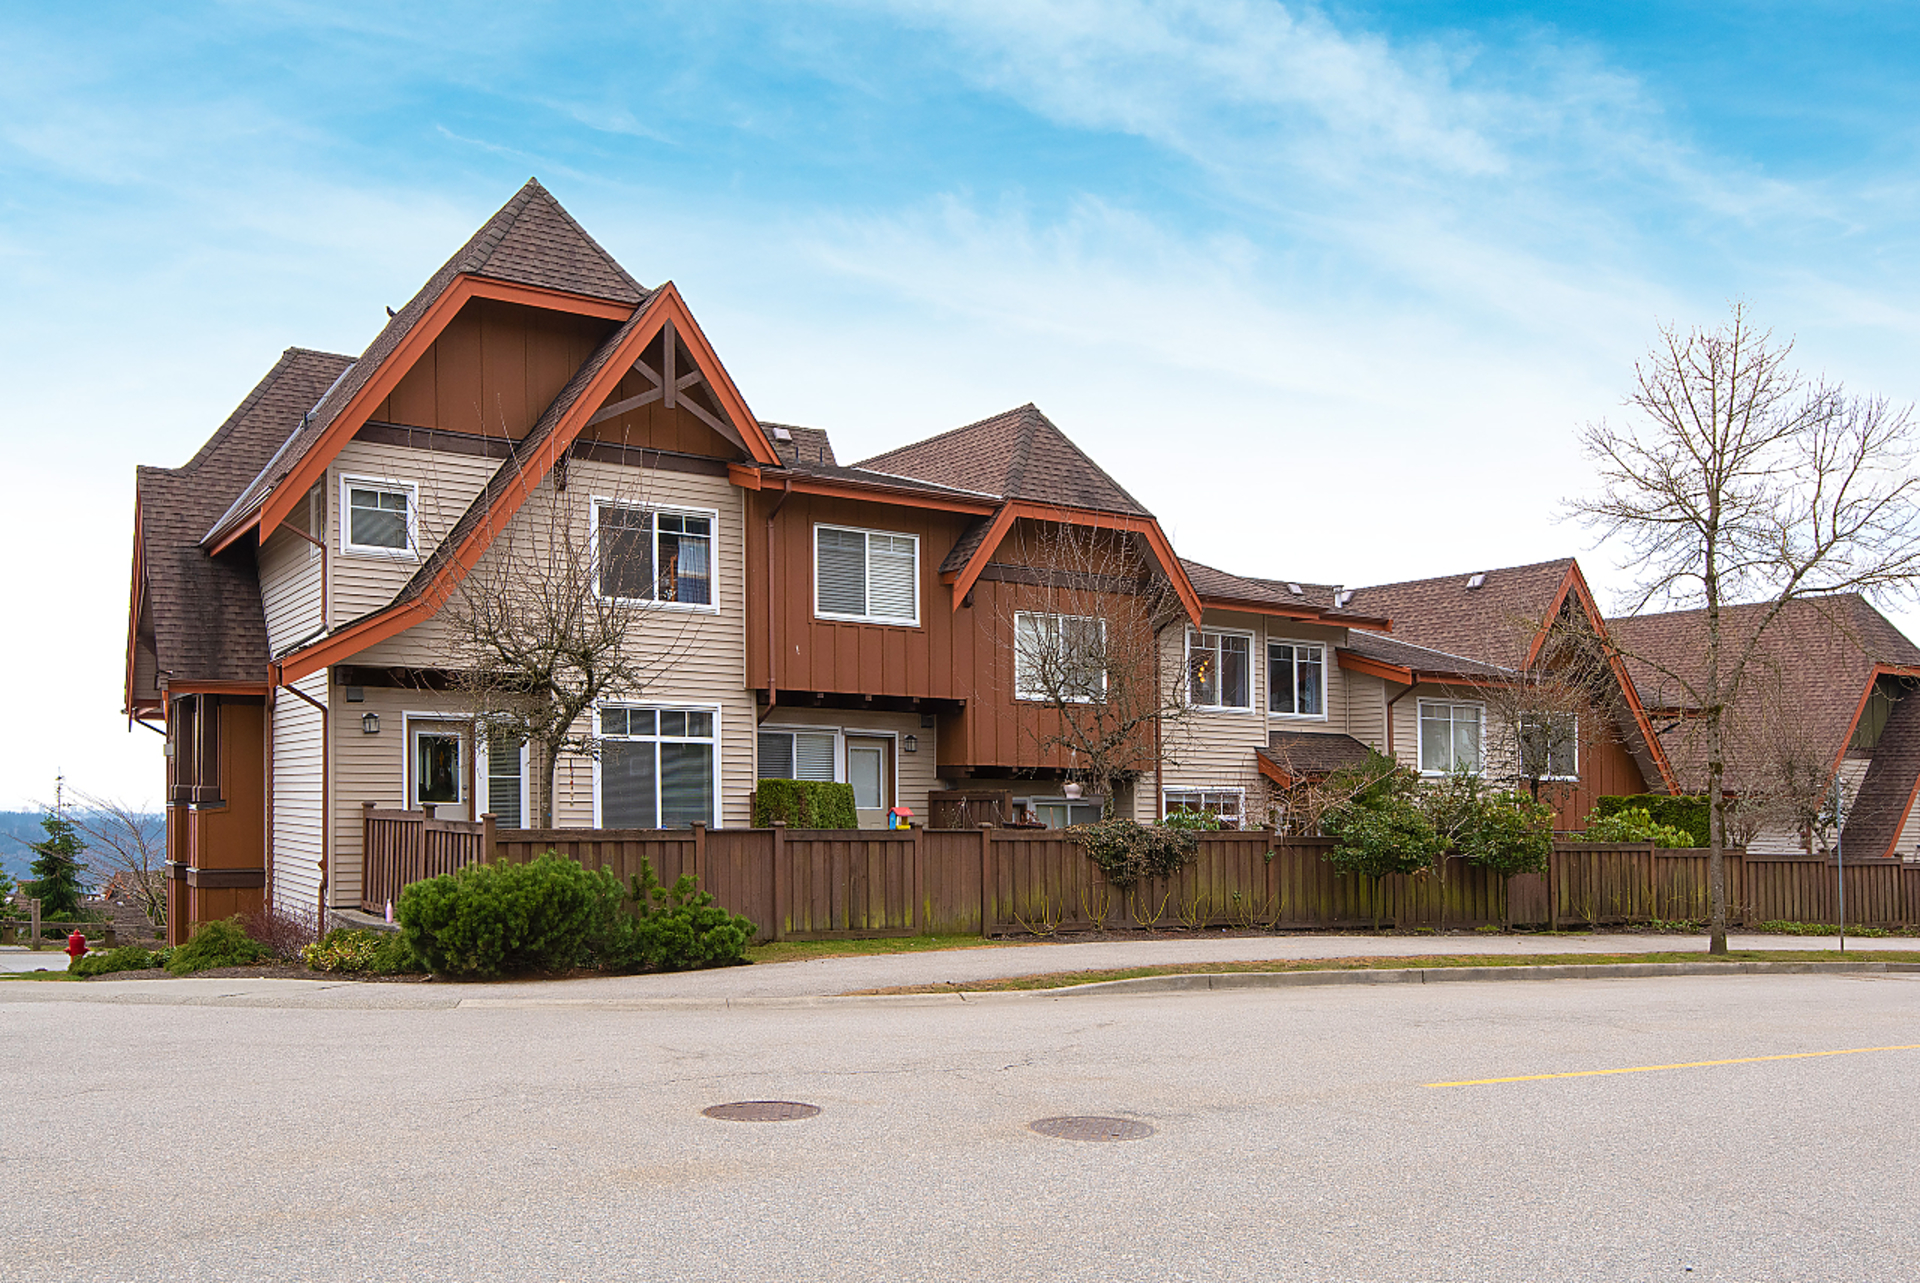 034 at 156 - 2000 Panorama Drive, Heritage Woods PM, Port Moody